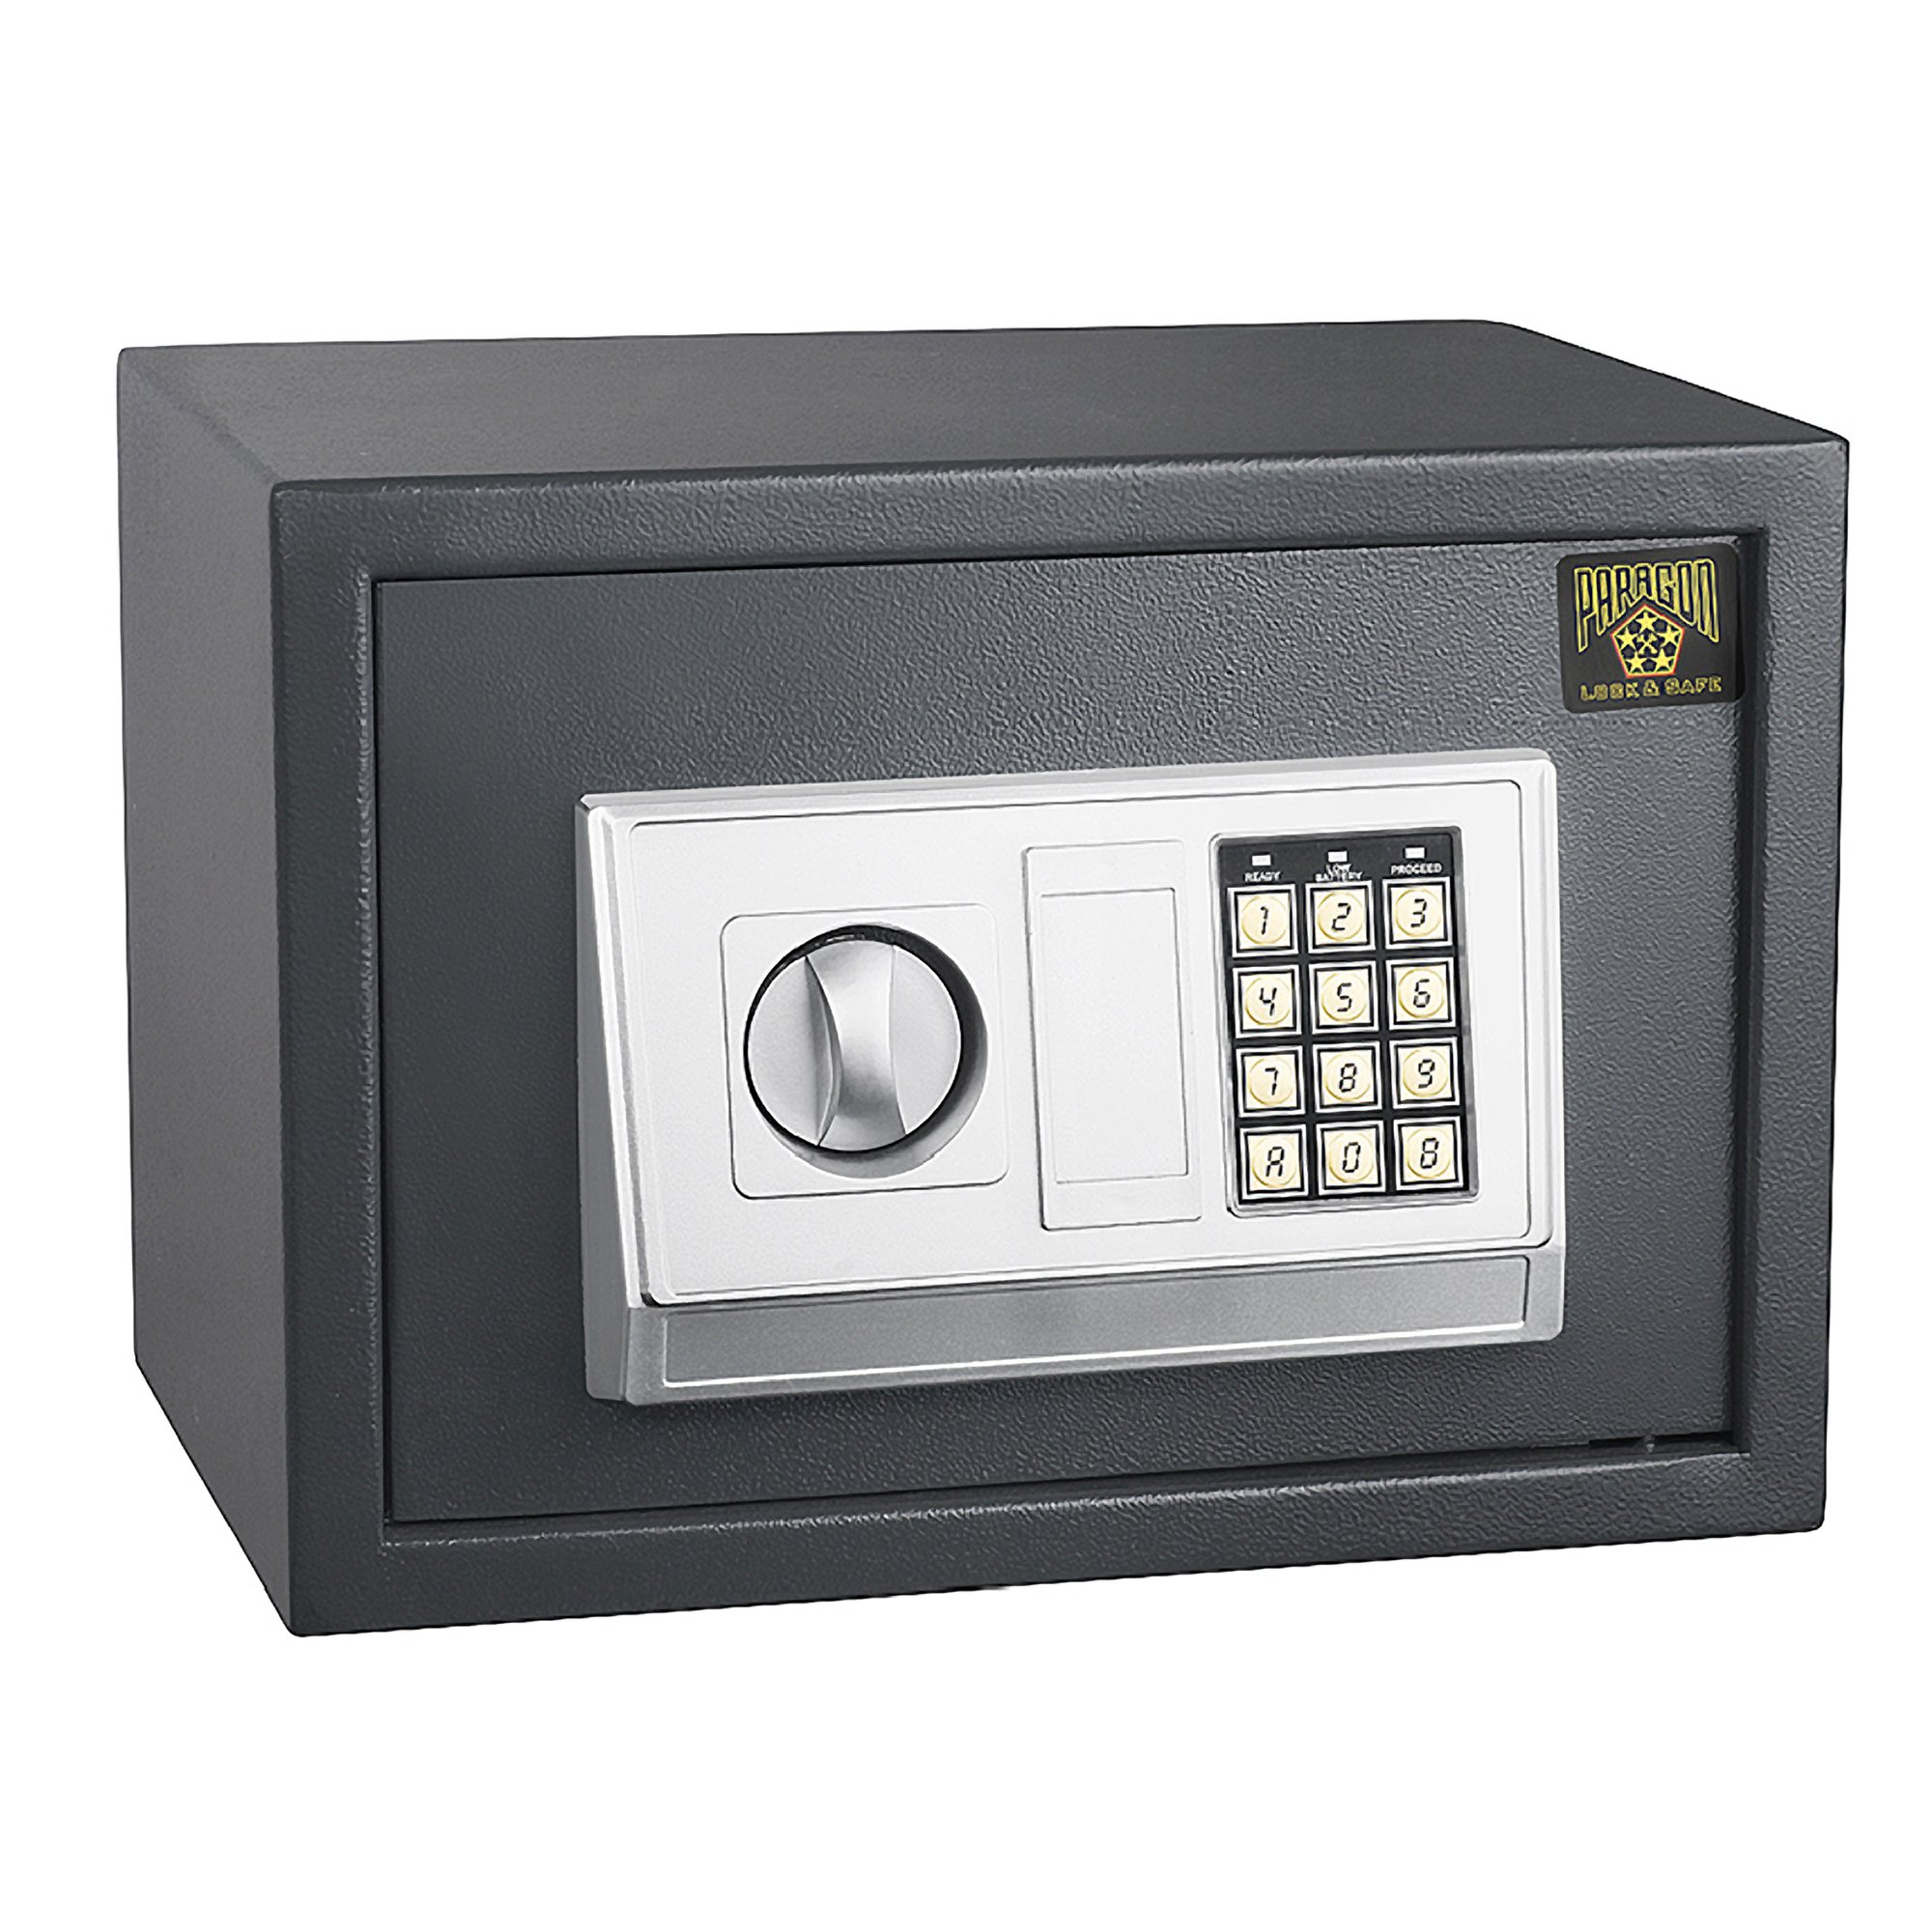 7825 Paragon Lock & Safe Electronic Digital Safe Jewelry Home Security Heavy Duty by Paragon Lock and Safe